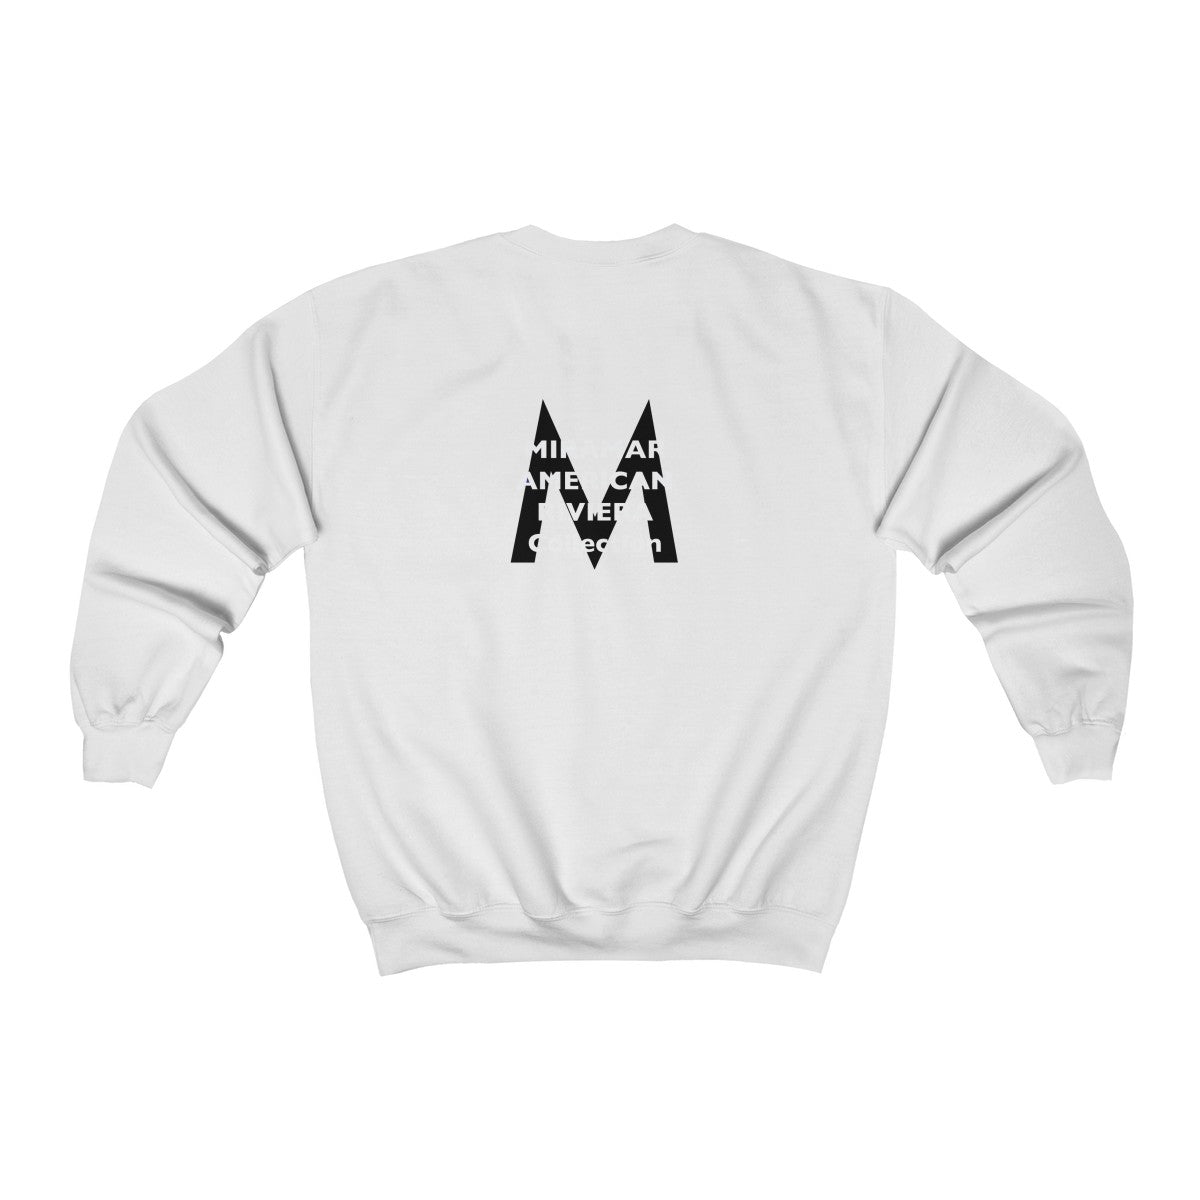 Miramar® Signature Collection Adult Crewneck Sweatshirt